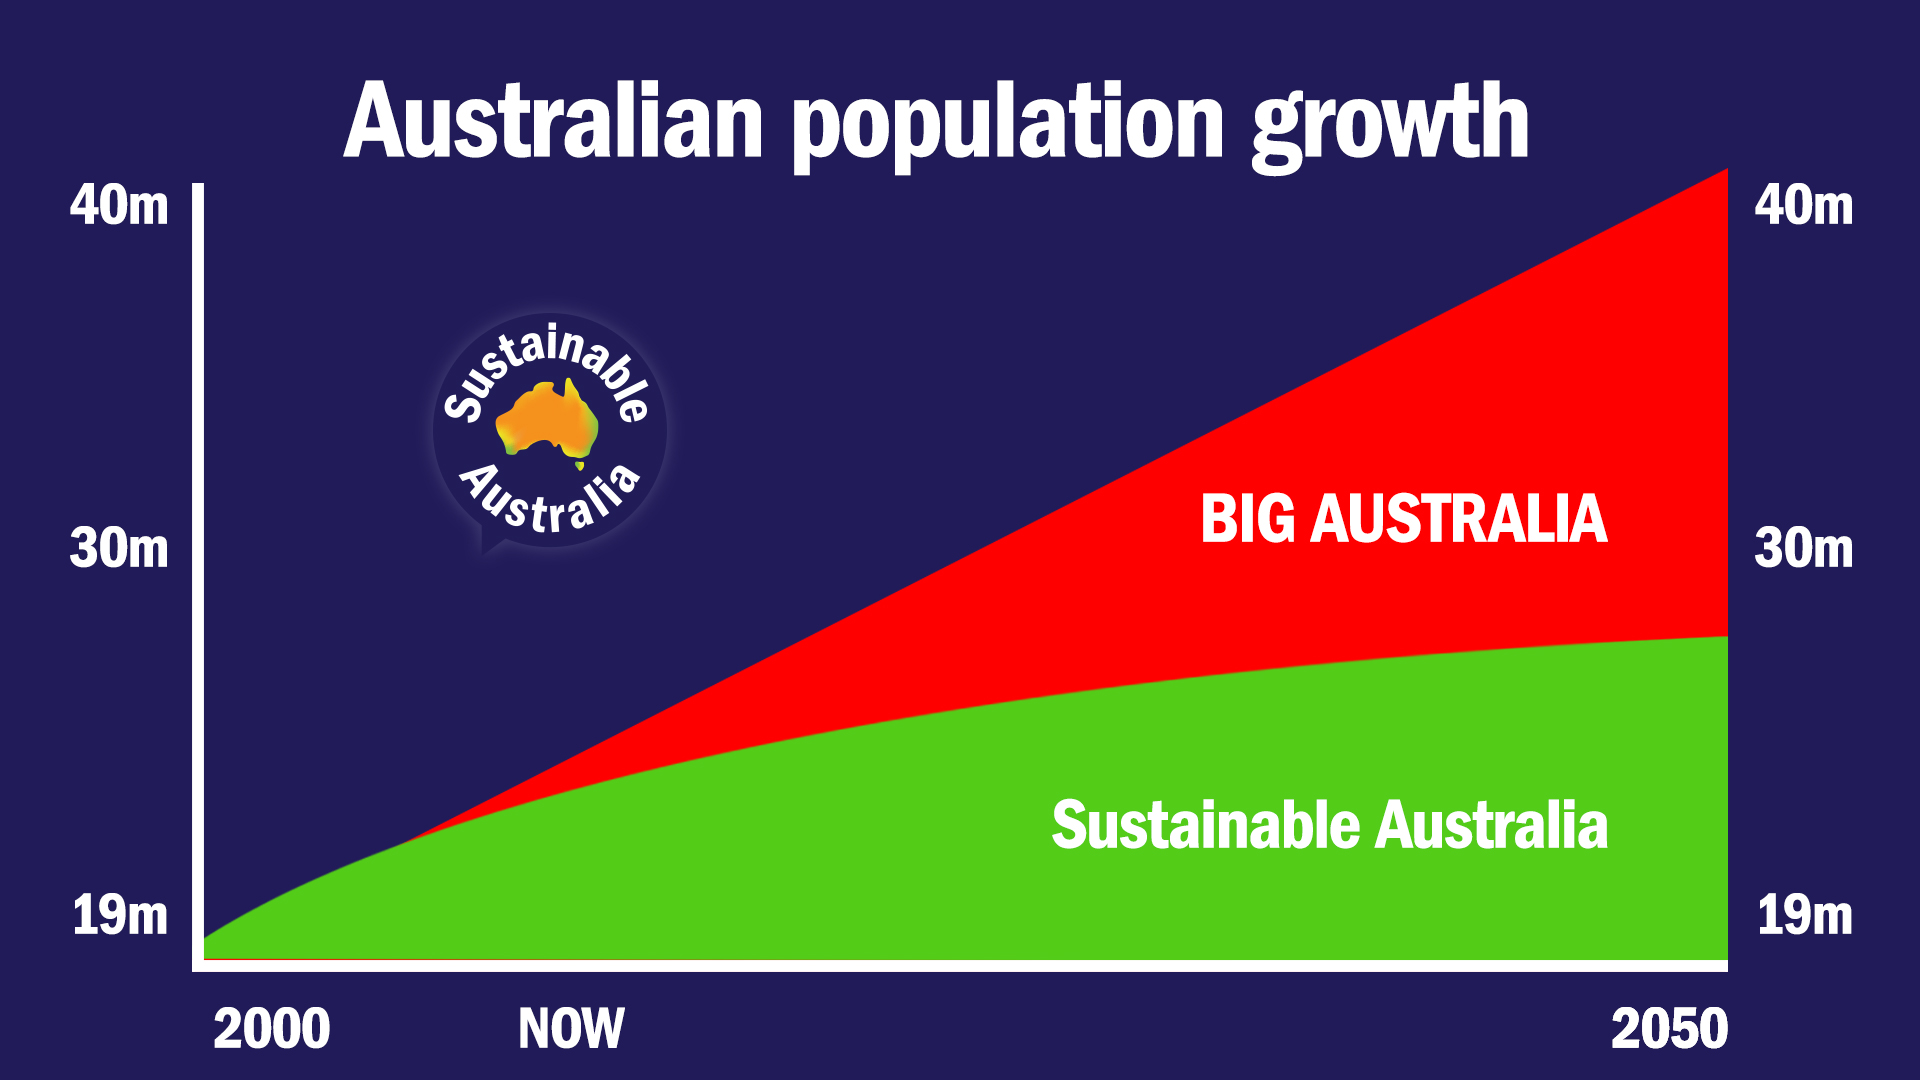 Sustainable_Australia_Versus_Big_Australia-Population.jpg